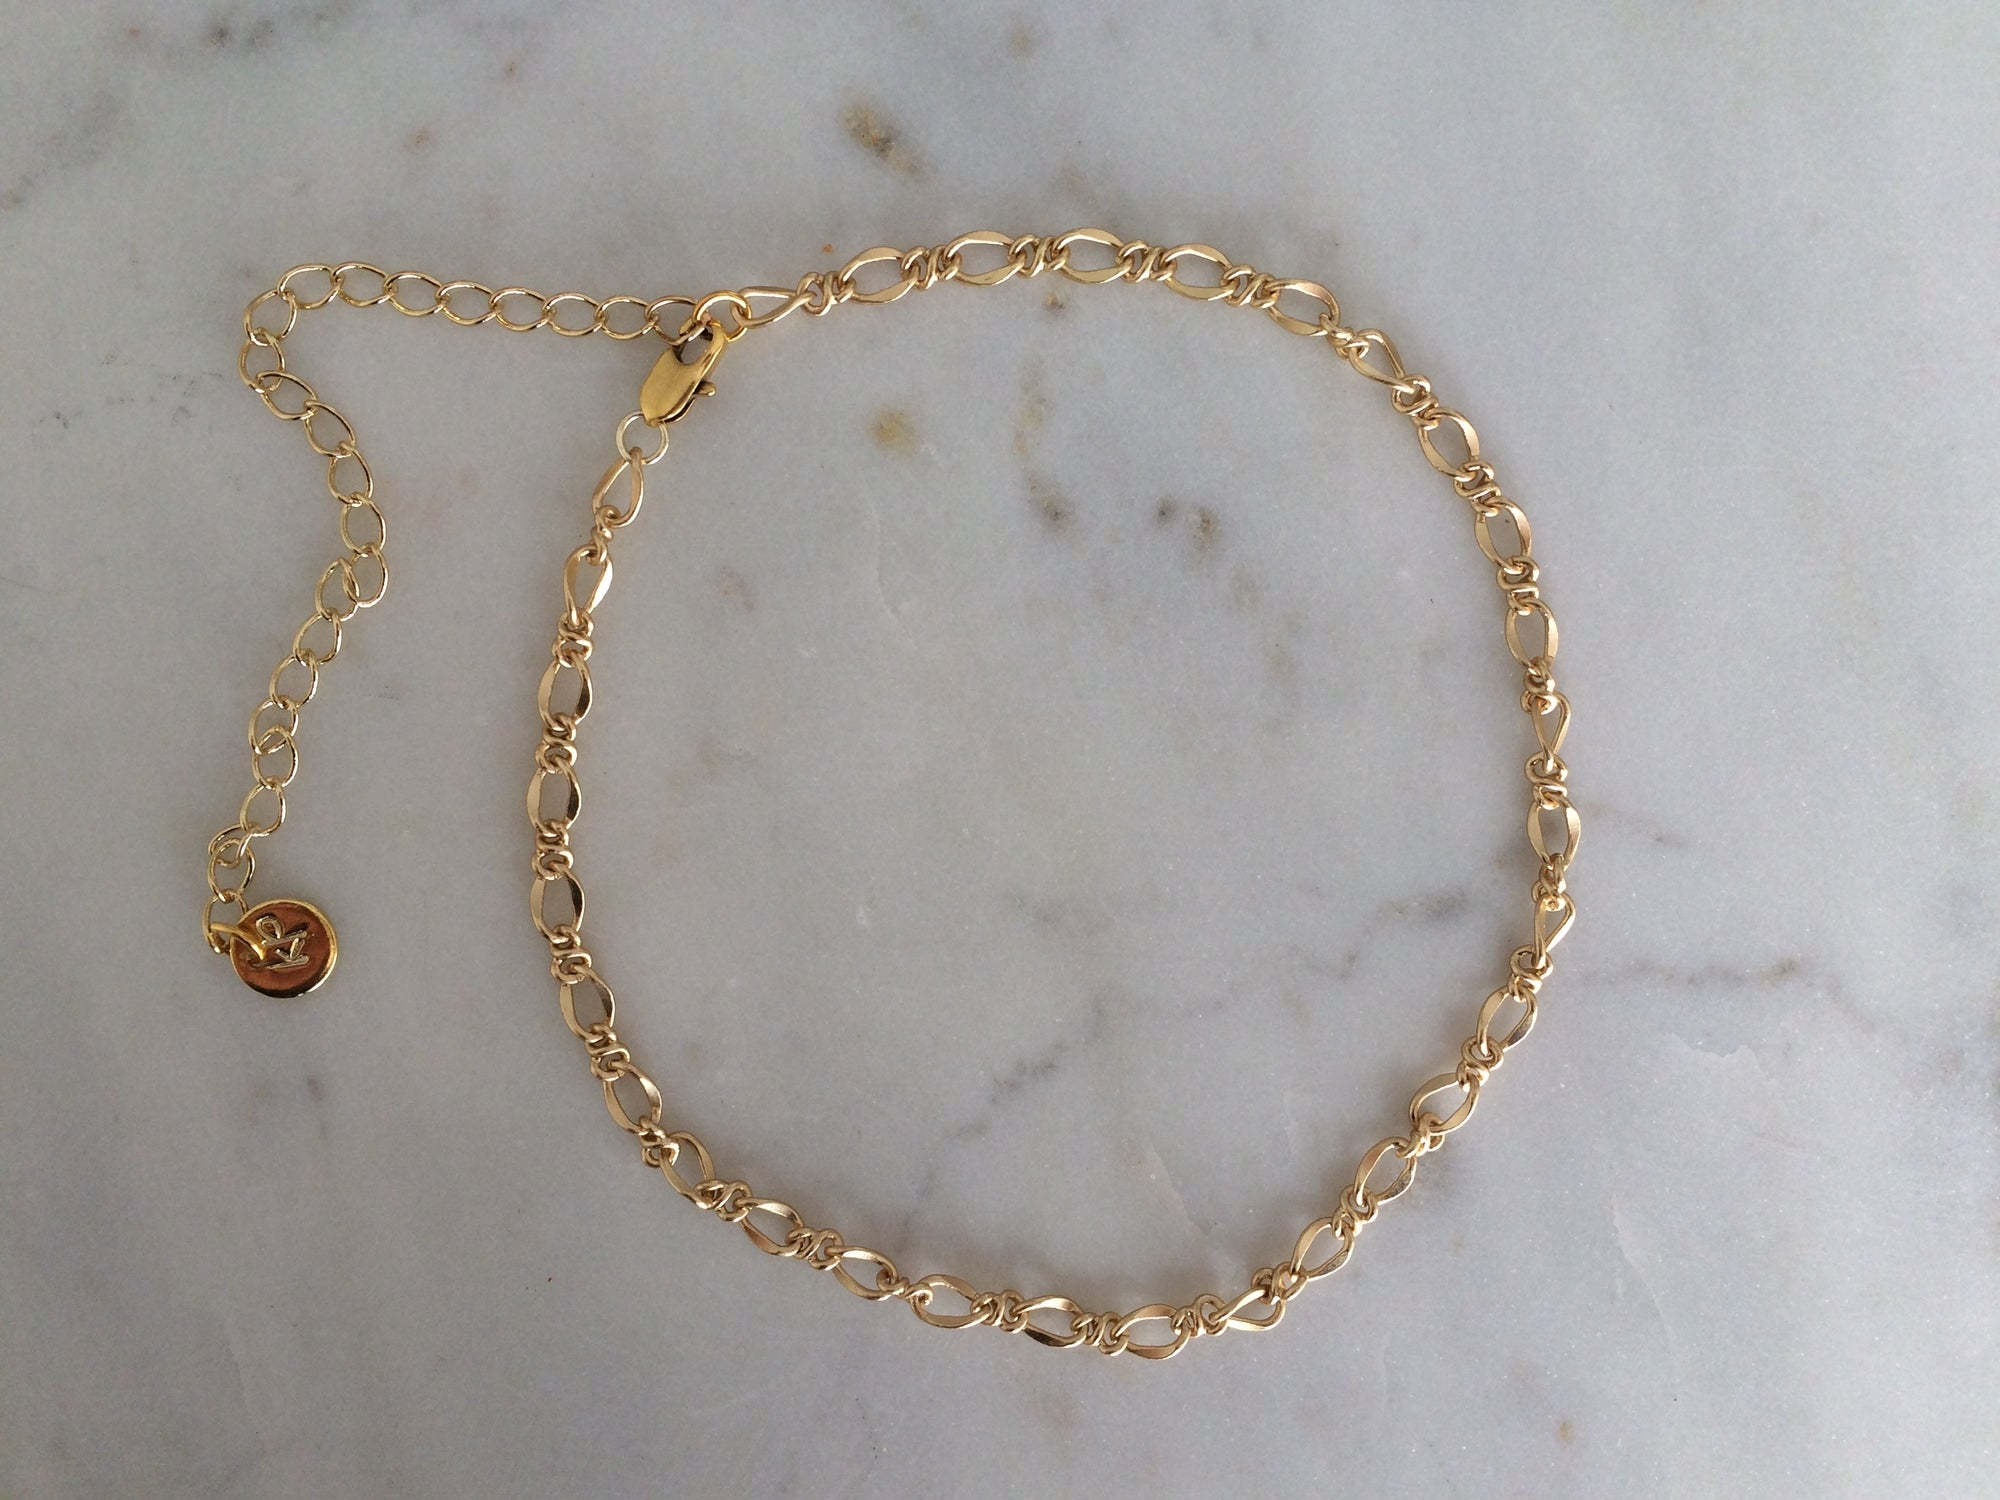 gold patterned chain choker, gold plated chain, gold plated choker, gold necklace, gold choker,gold linked chain, likned chain choker, thick choker chain,gold chain choker necklace,gold chain choker set,gold plated brass choker,dainty gold chain choker